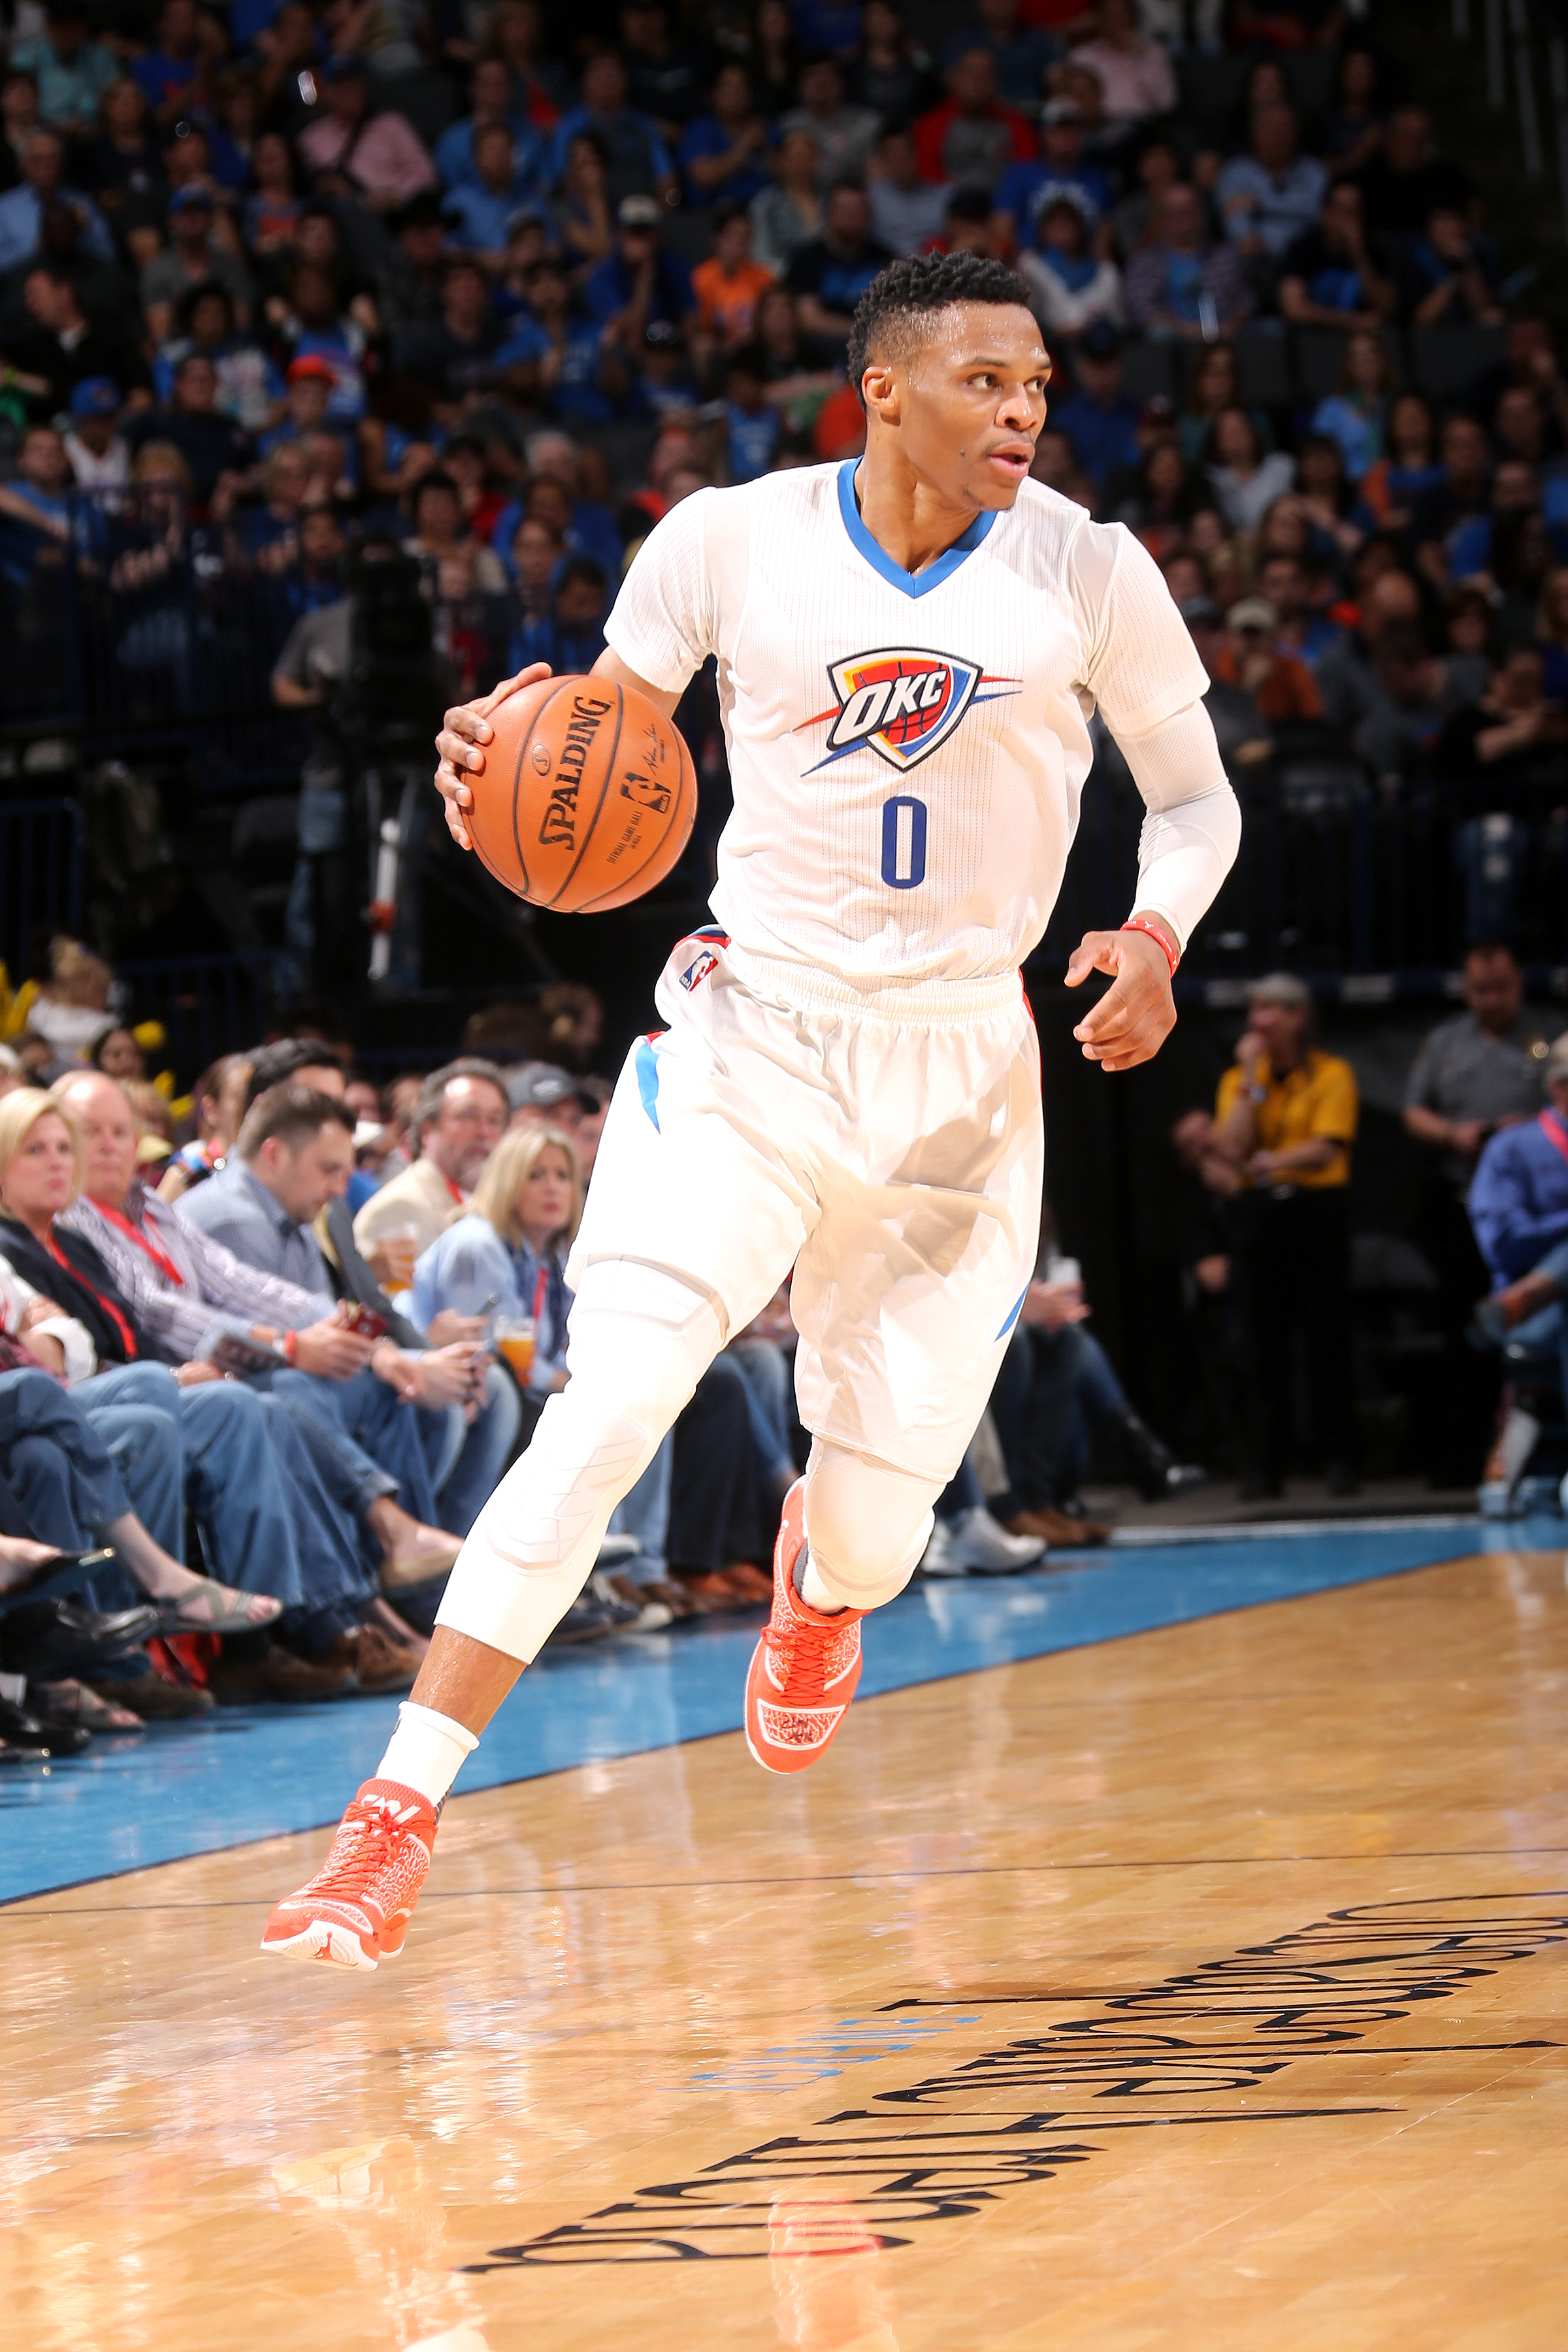 OKLAHOMA CITY, OK- MARCH 14: Russell Westbrook #0 of the Oklahoma City Thunder handles the ball during the game against the Portland Trail Blazers on March 14, 2016 at Chesapeake Energy Arena in Oklahoma City, Oklahoma. (Photo by Layne Murdoch/NBAE via Ge